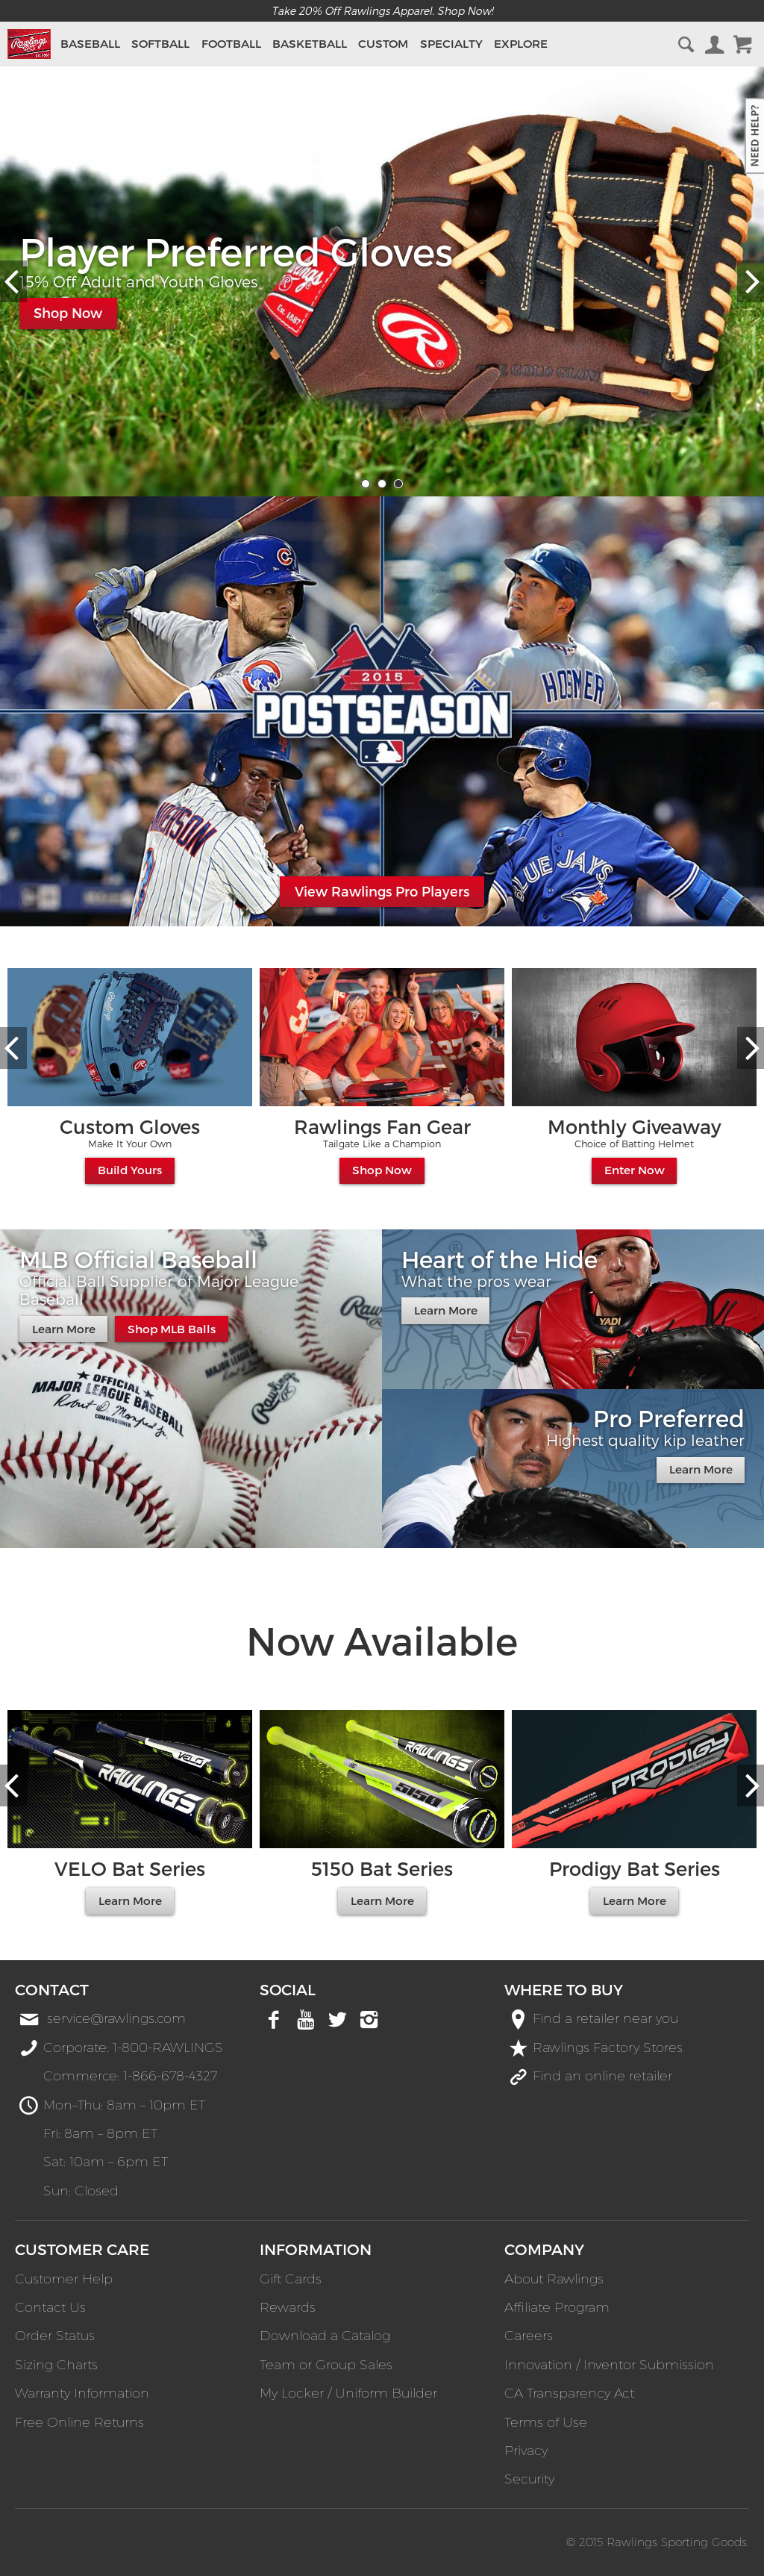 Rawlings Sporting Goods Company Competitors, Revenue and